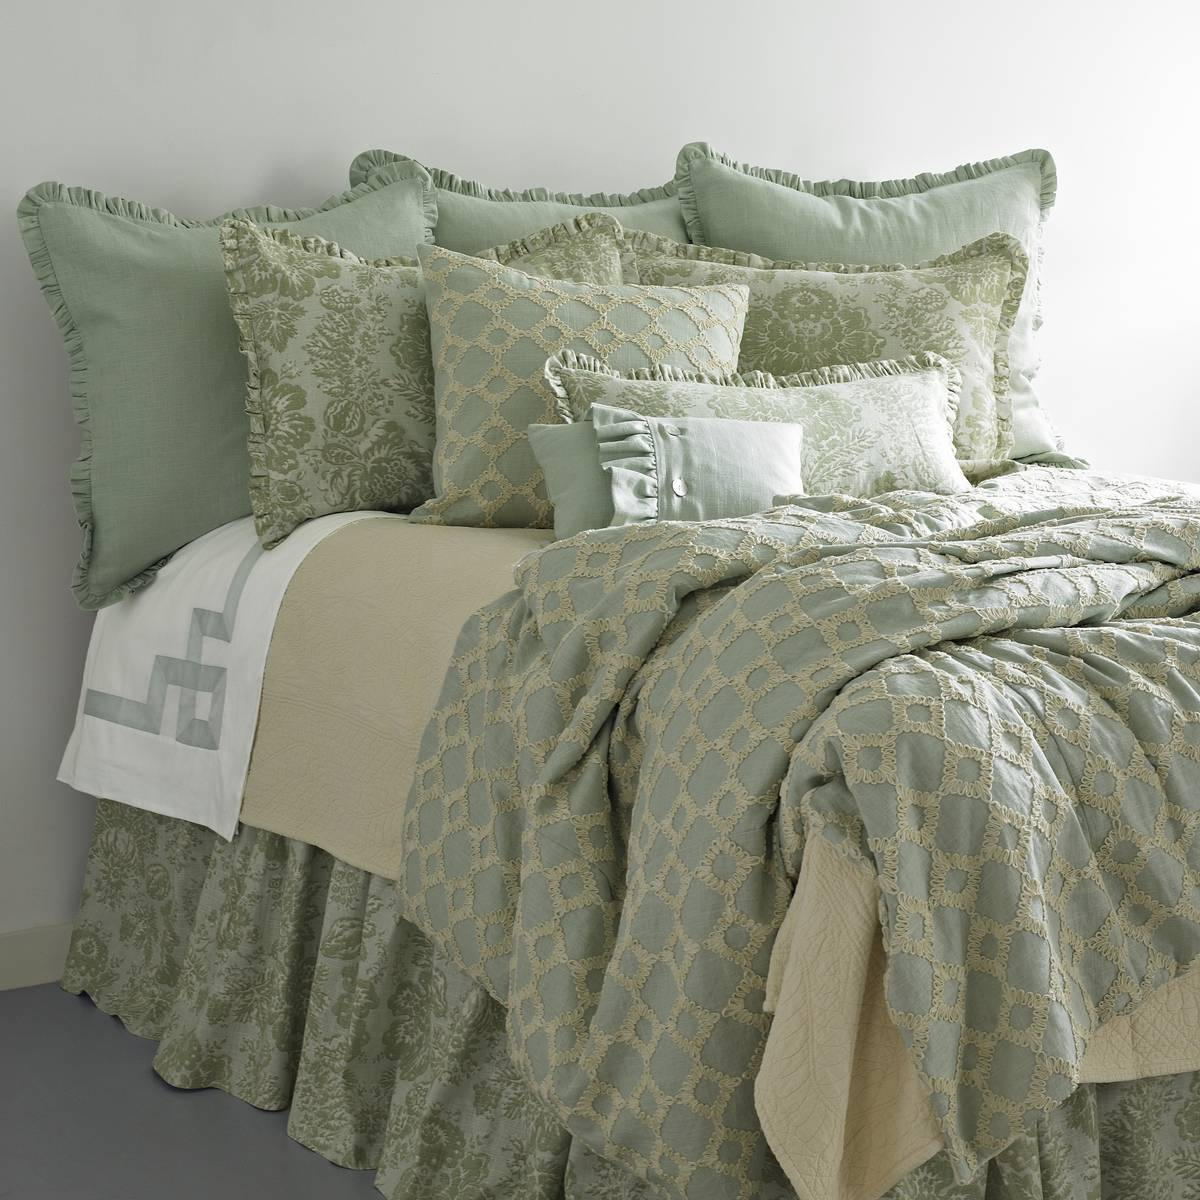 Traditions Linens Keepsake Bedding Ensemble